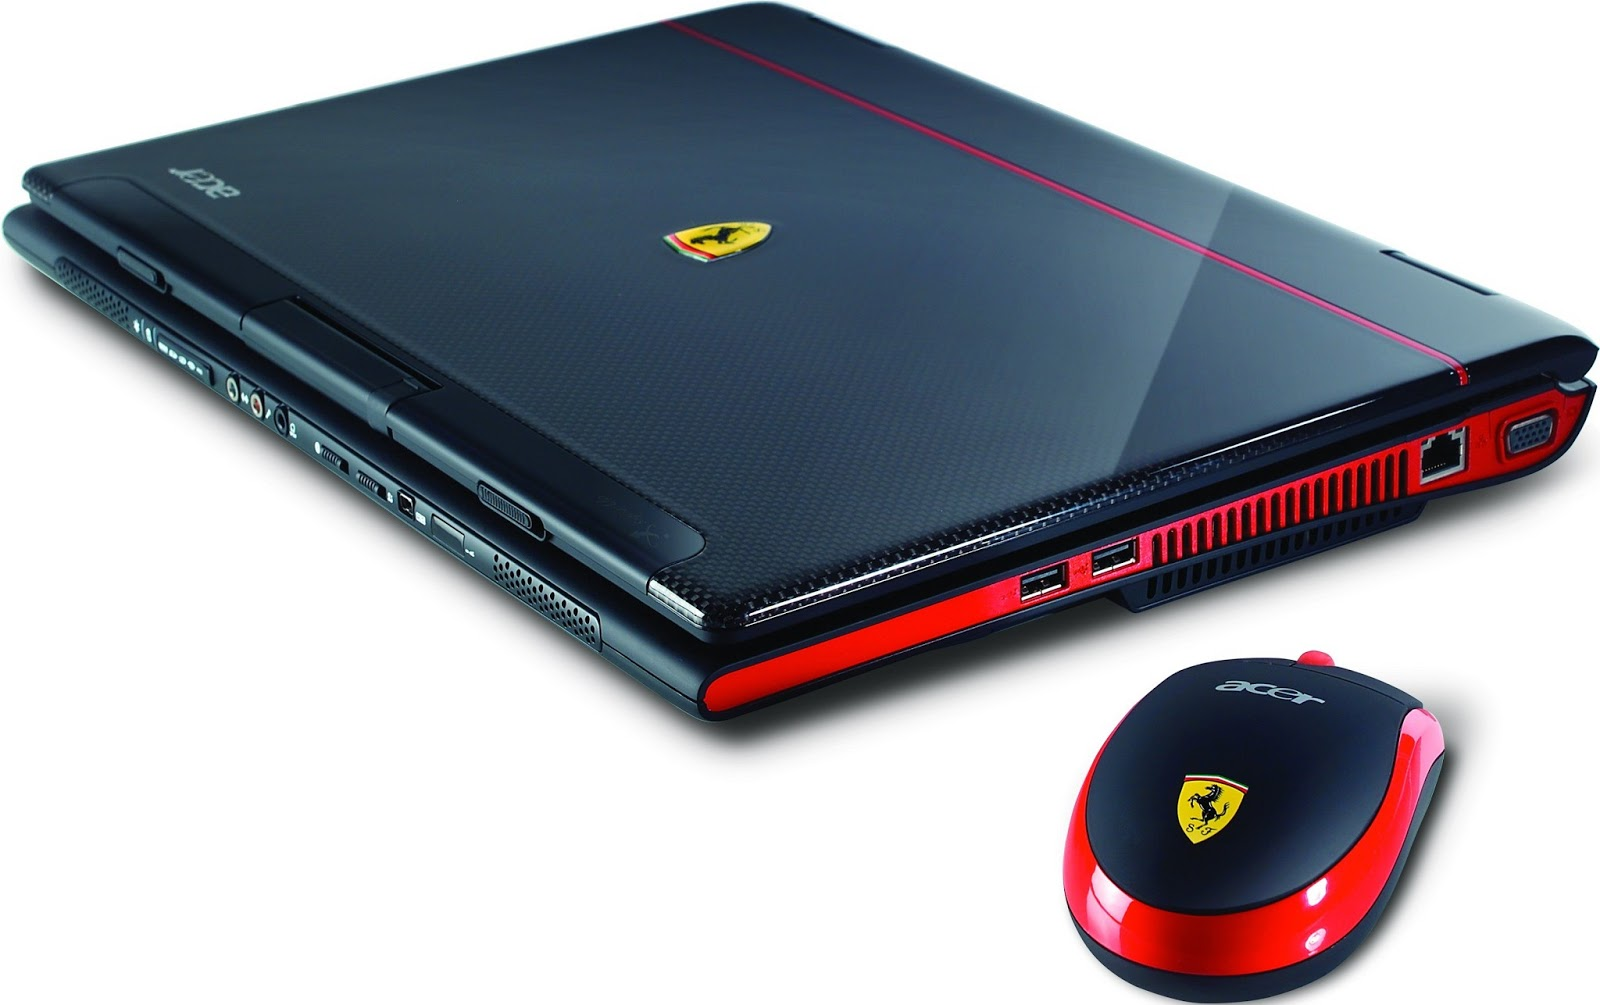 Notebook acer ferrari 5000. Download drivers for windows xp.